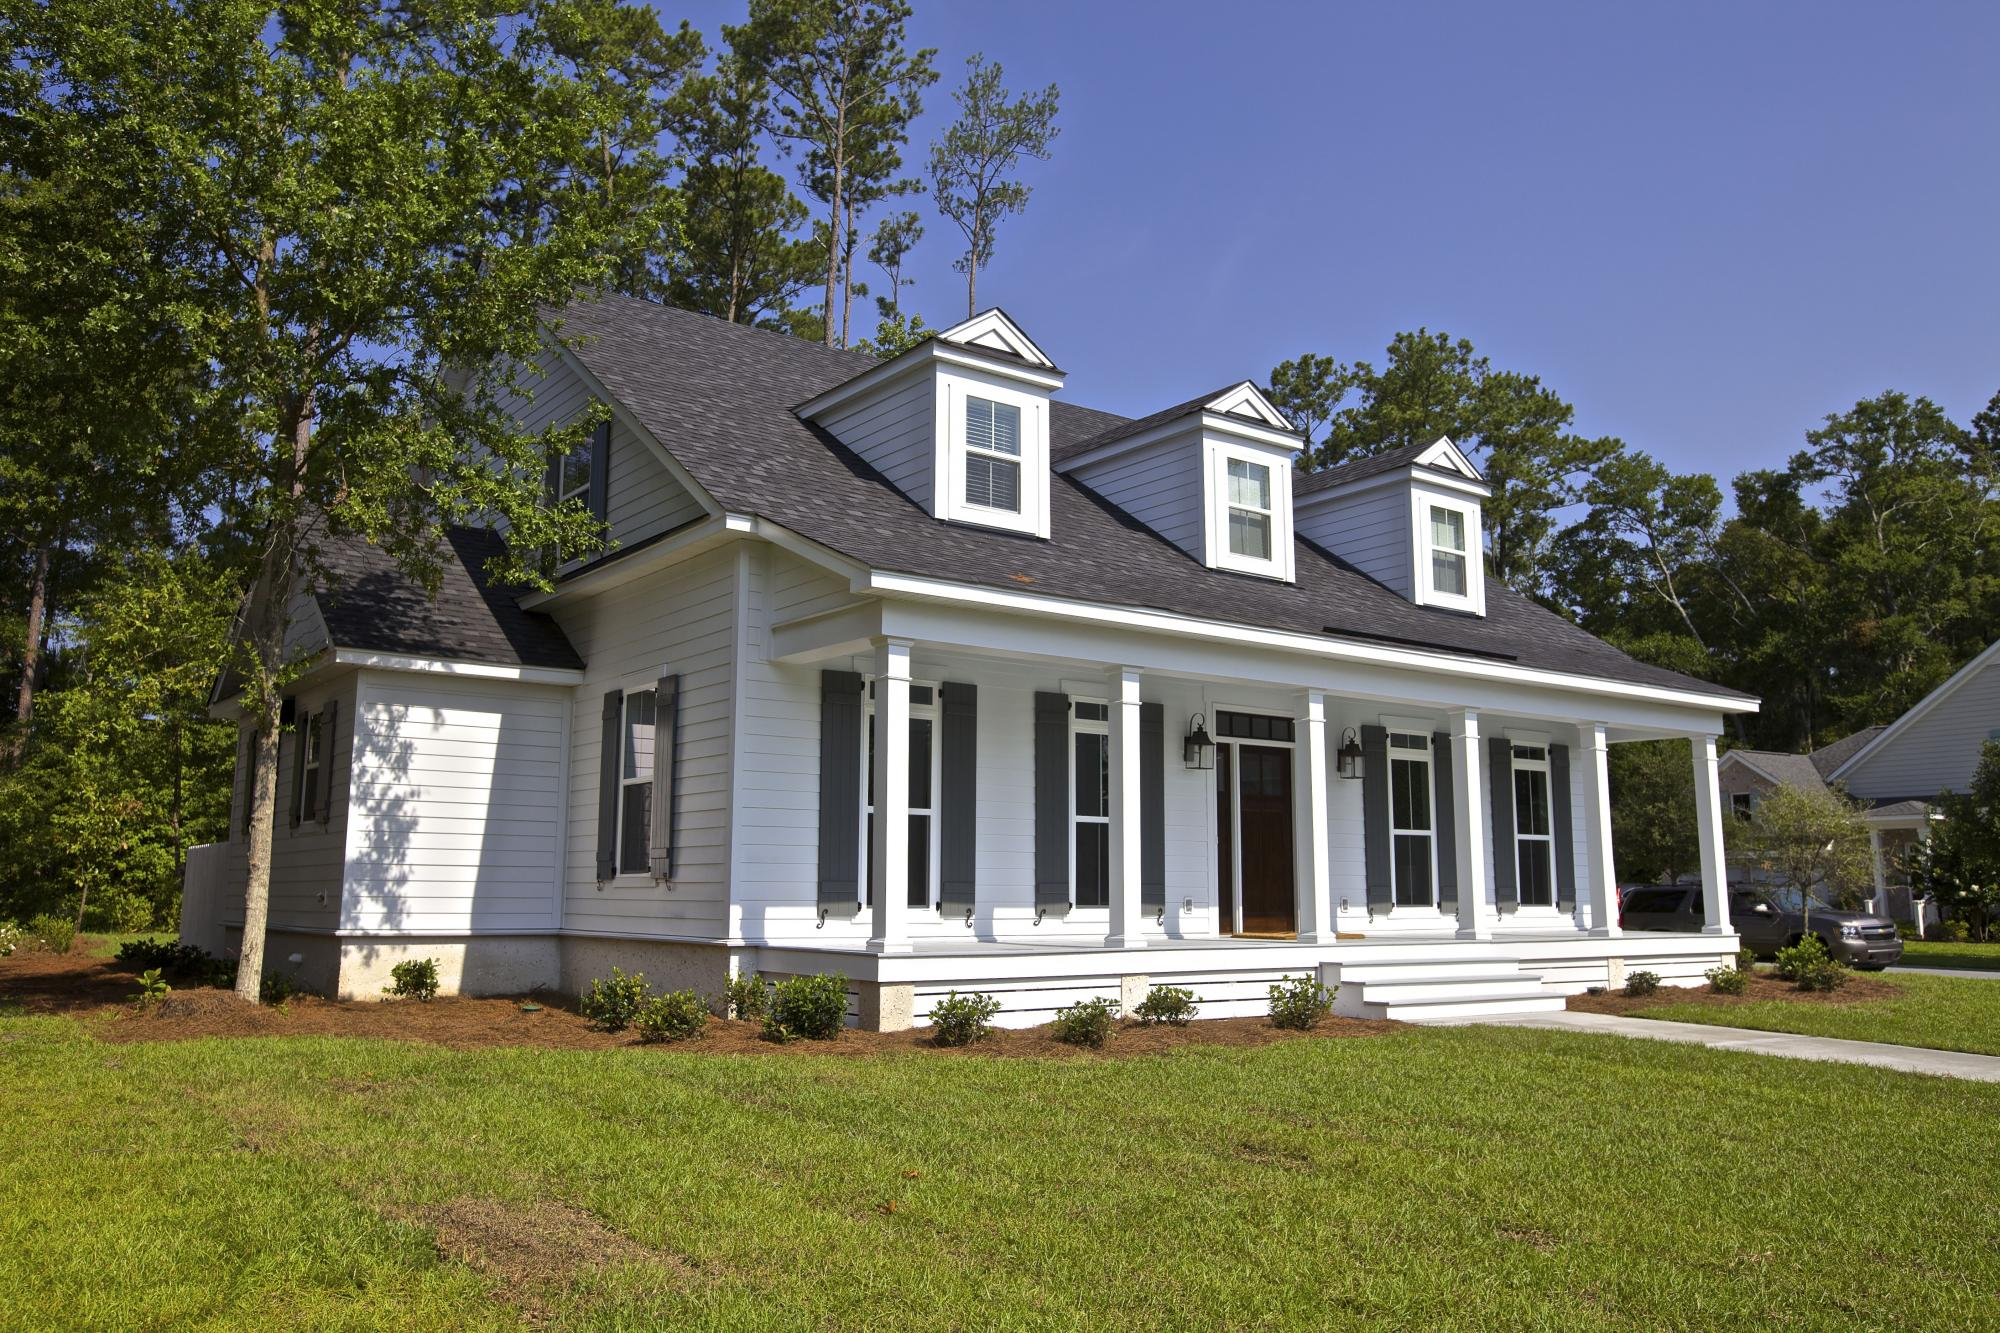 Model homes custom home builders savannah ga konter for Custom home builders savannah ga